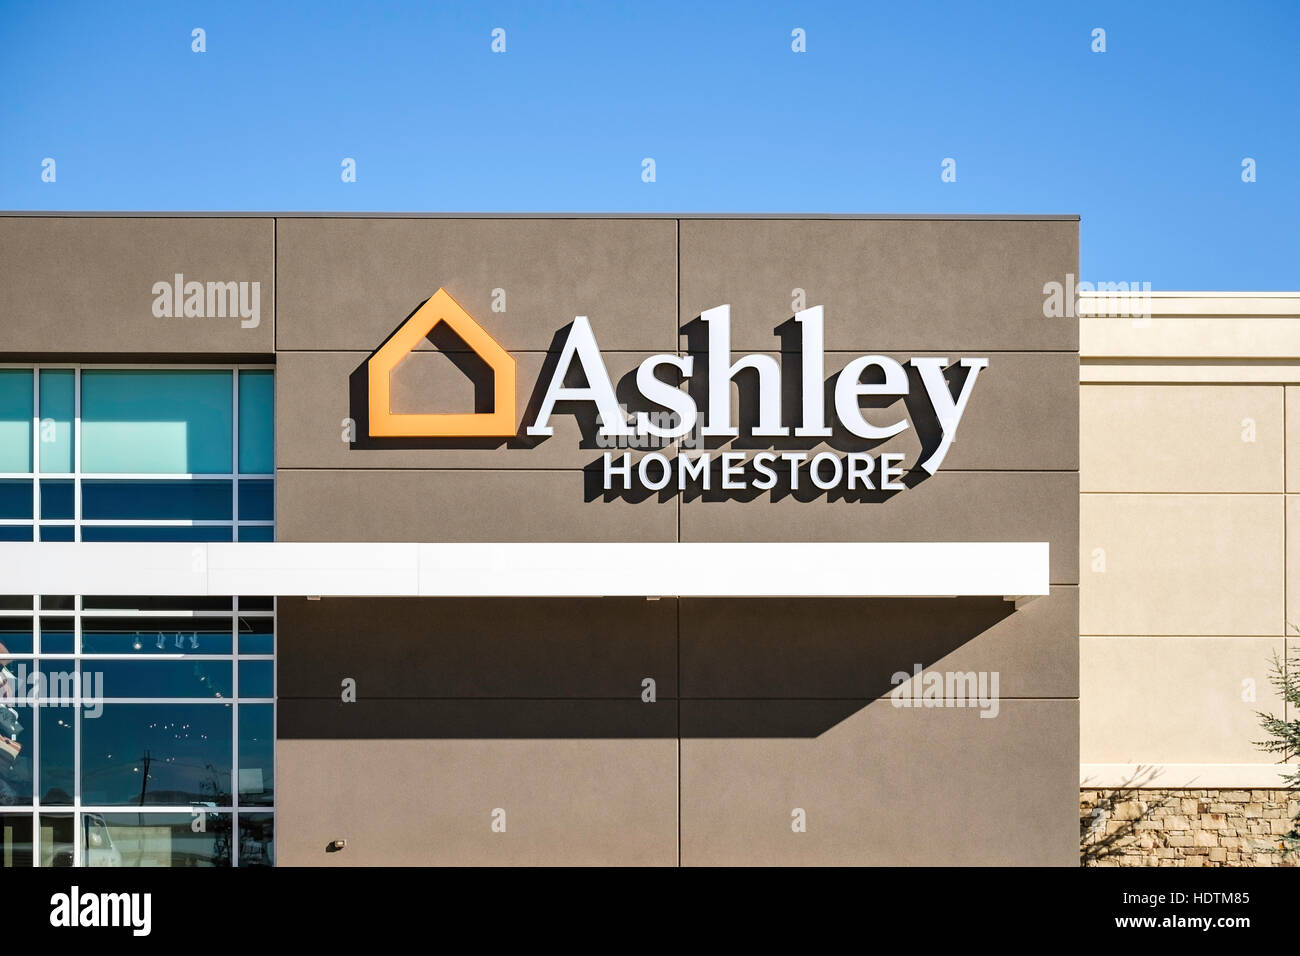 Ashley Homestore, A Decor And Furniture Store On Memorial Road In North Oklahoma  City, Oklahoma, USA.